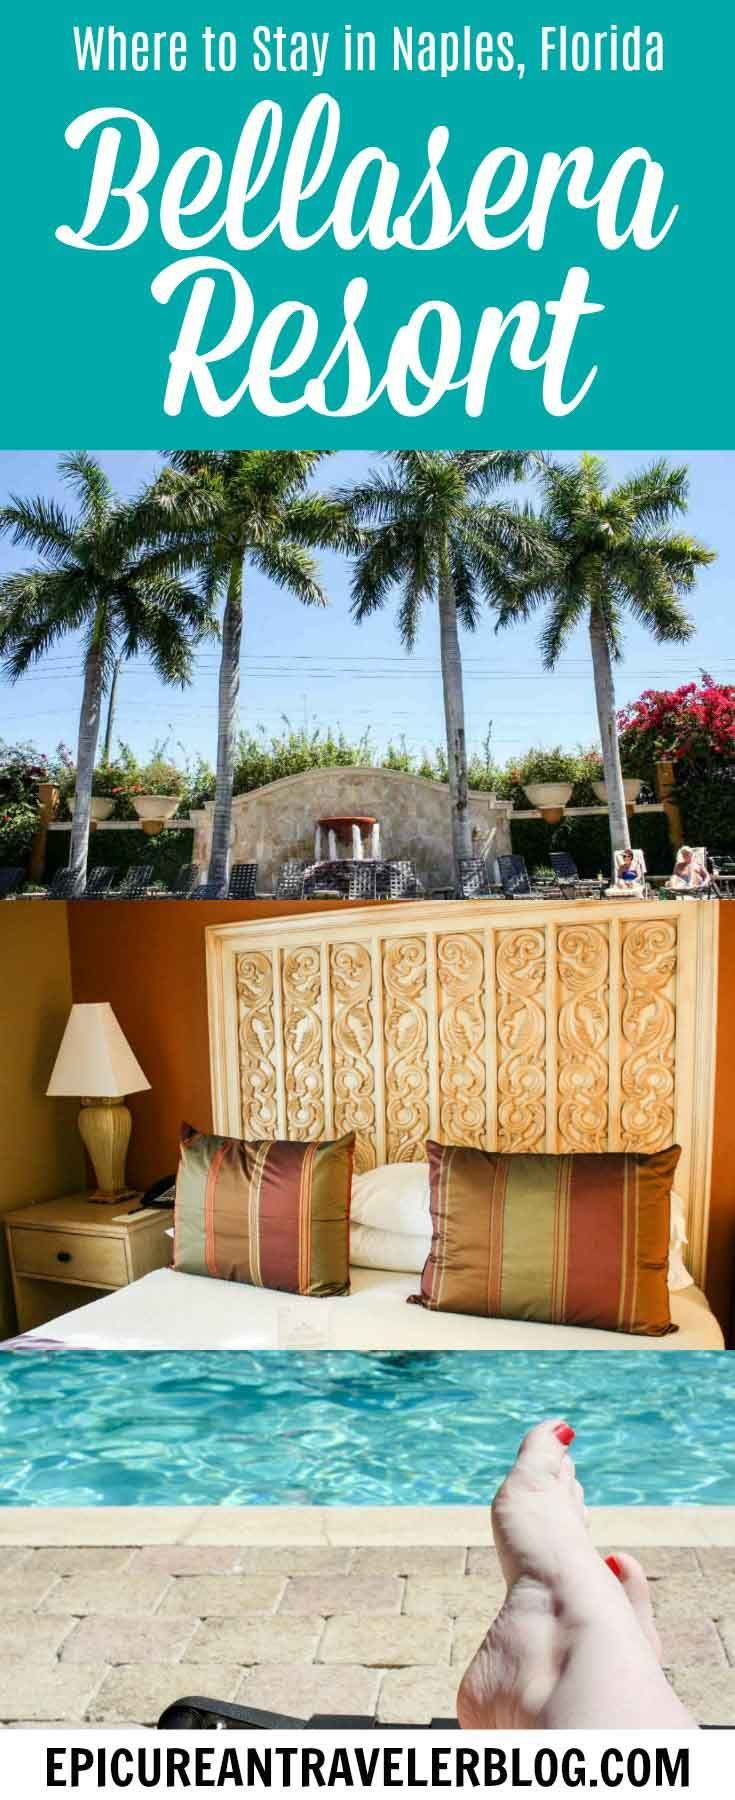 Bellasera Resort Where Grown Up Families Should Stay In Naples Fl Usa Travel Destinations Florida Travel America Travel